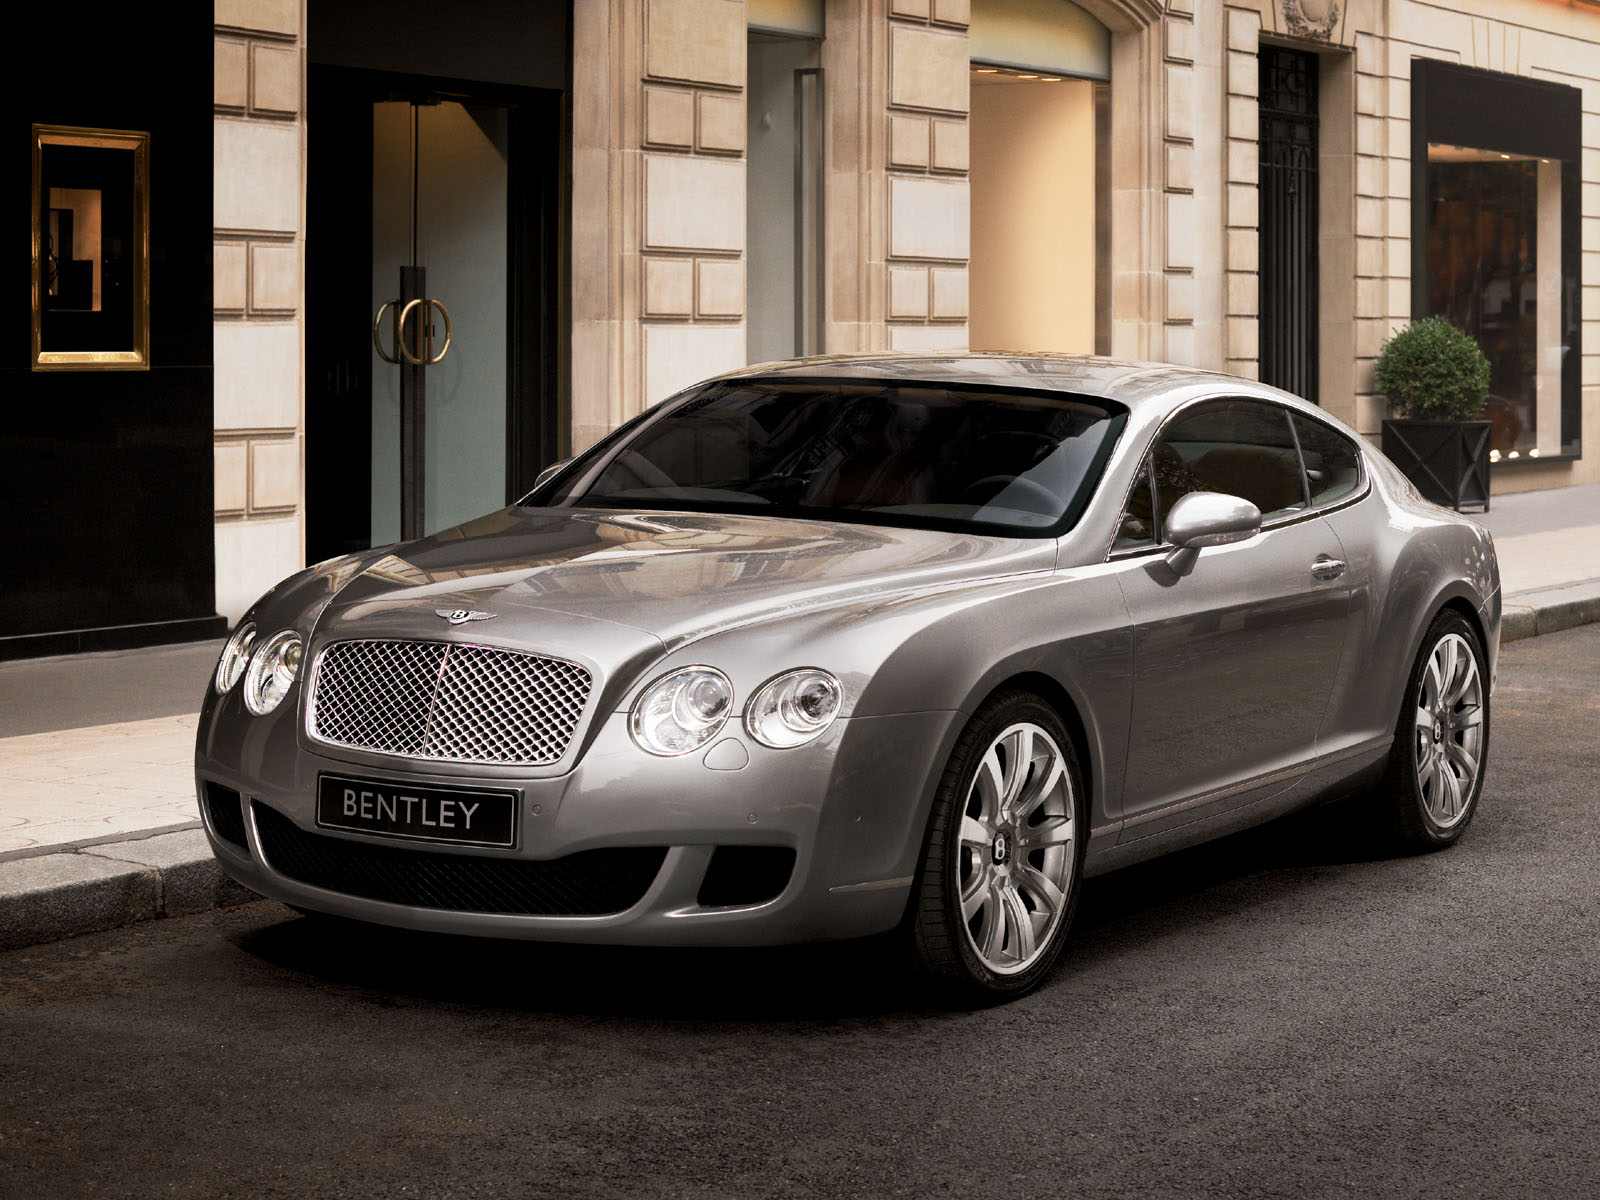 2009 Bentley Continental Gt Speed #6